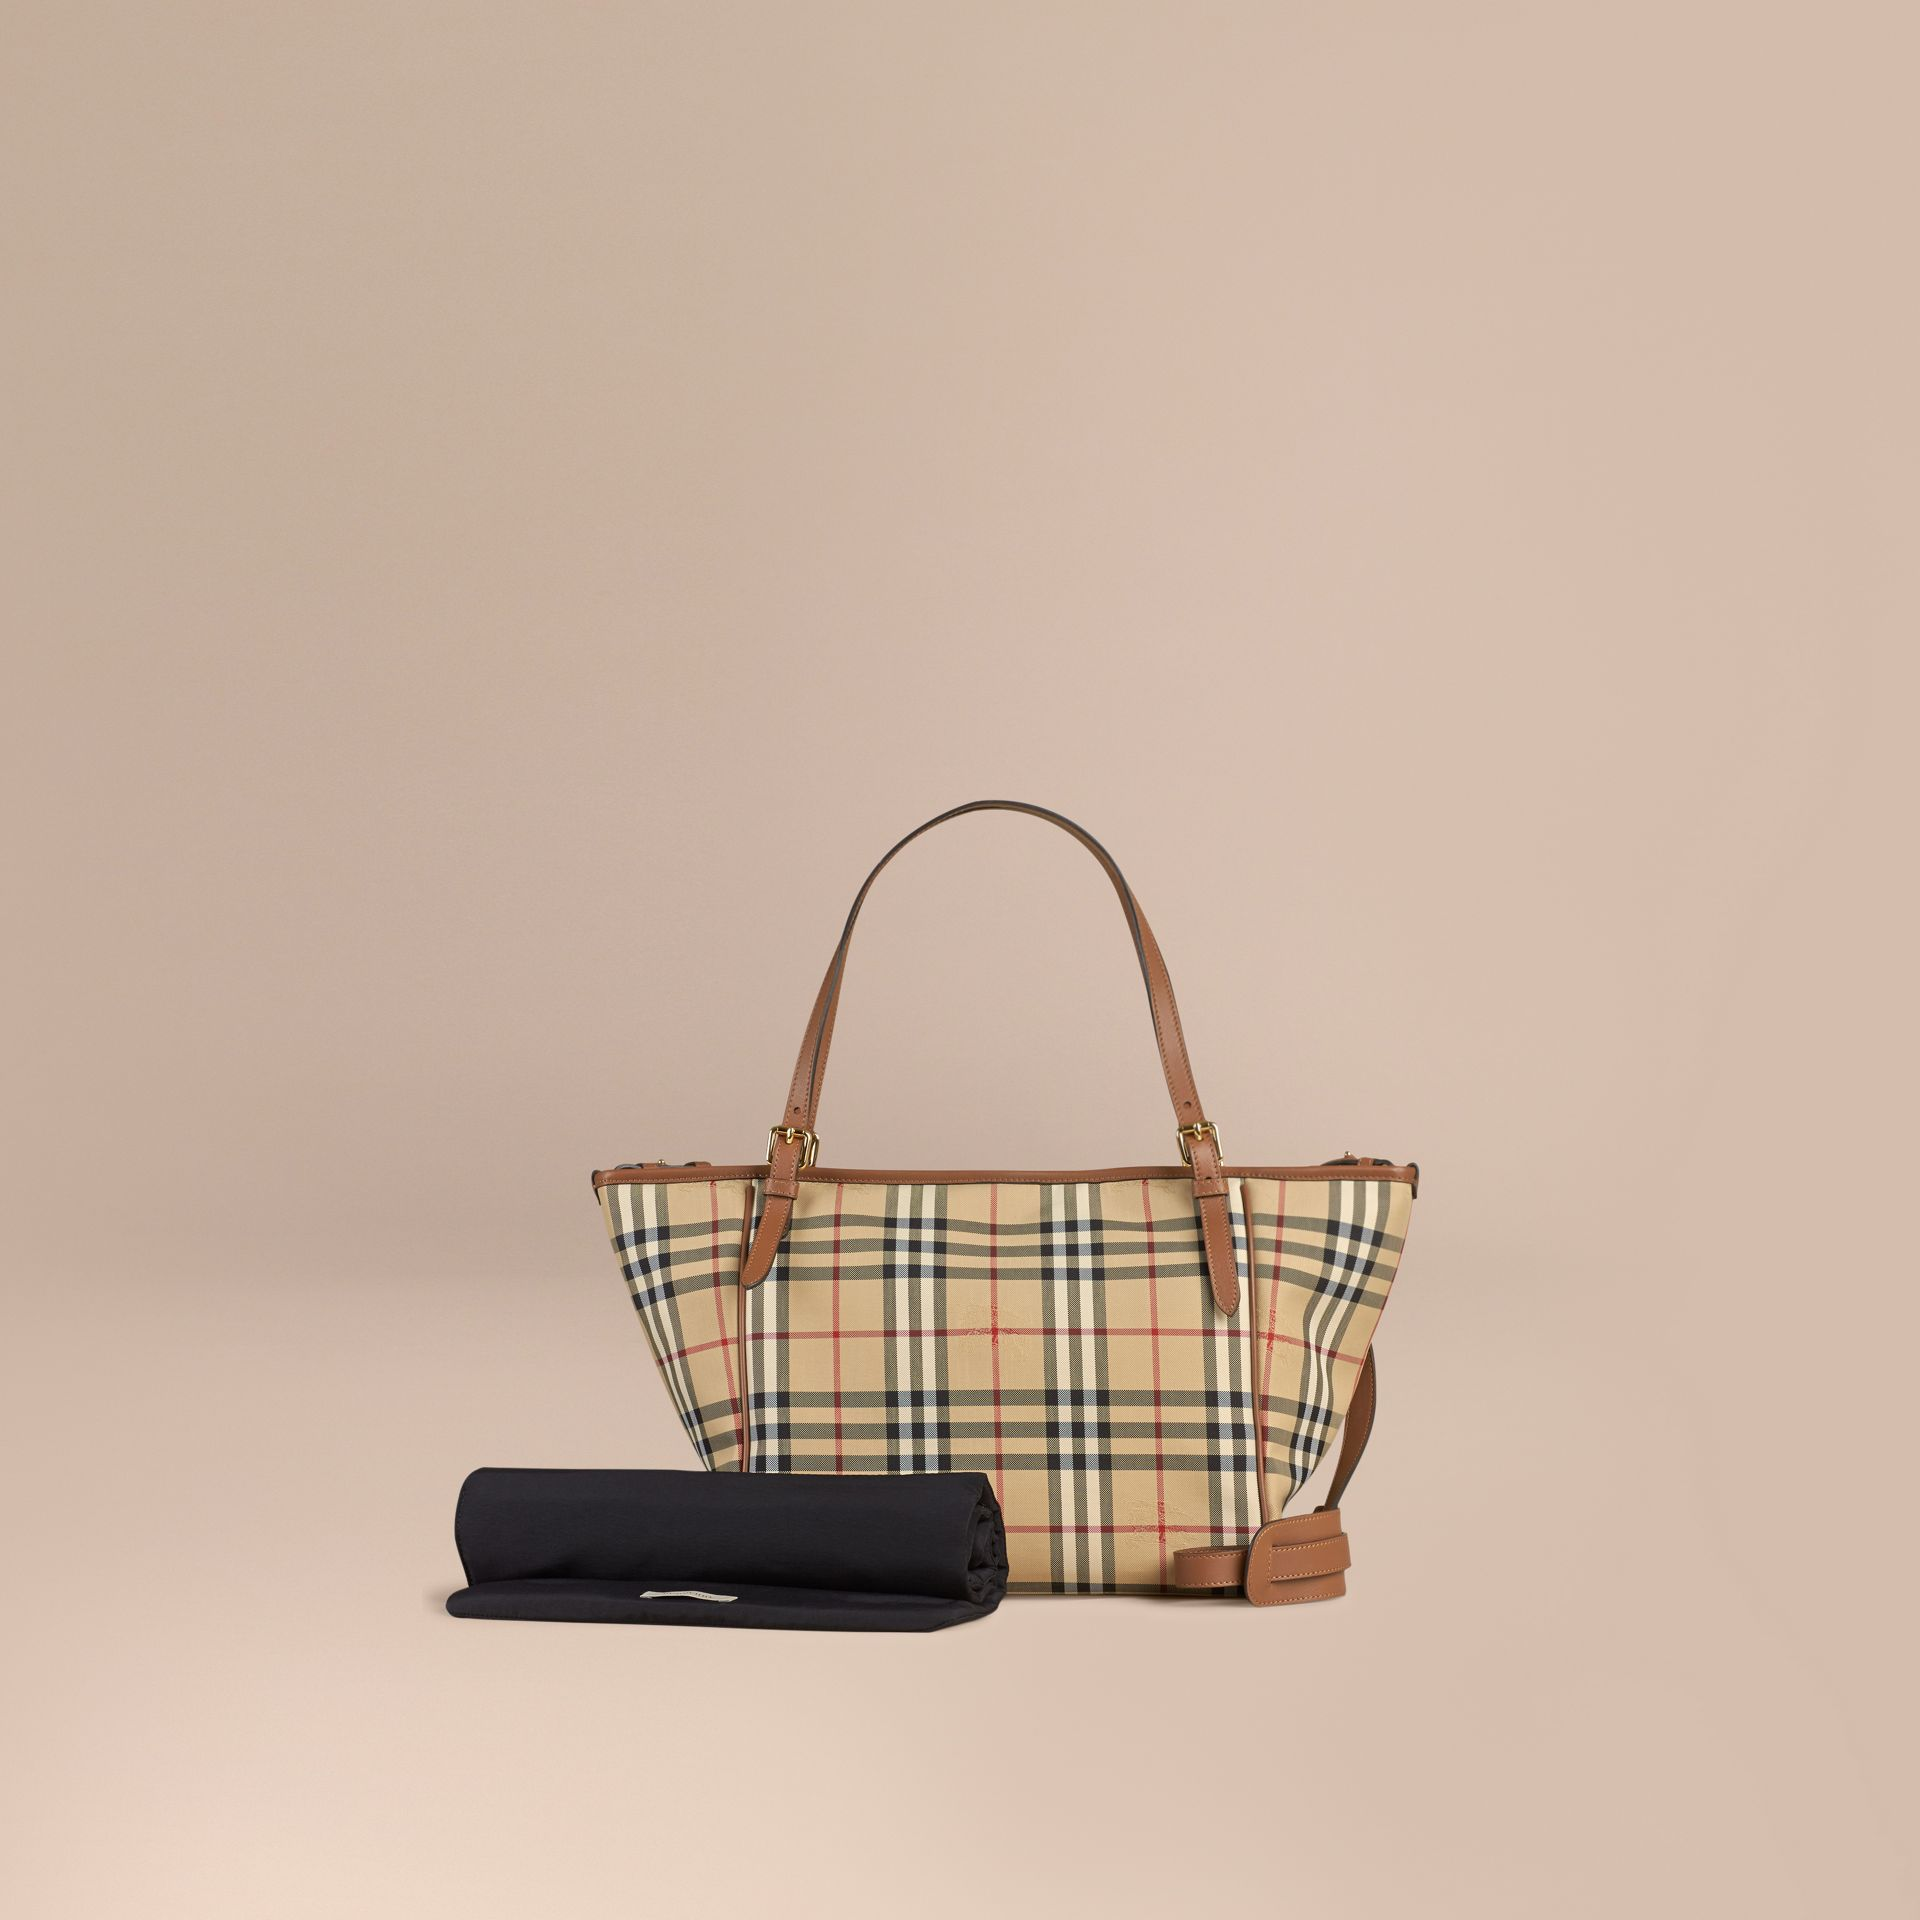 Horseferry Check Baby Changing Tote Bag in Tan | Burberry - gallery image 1